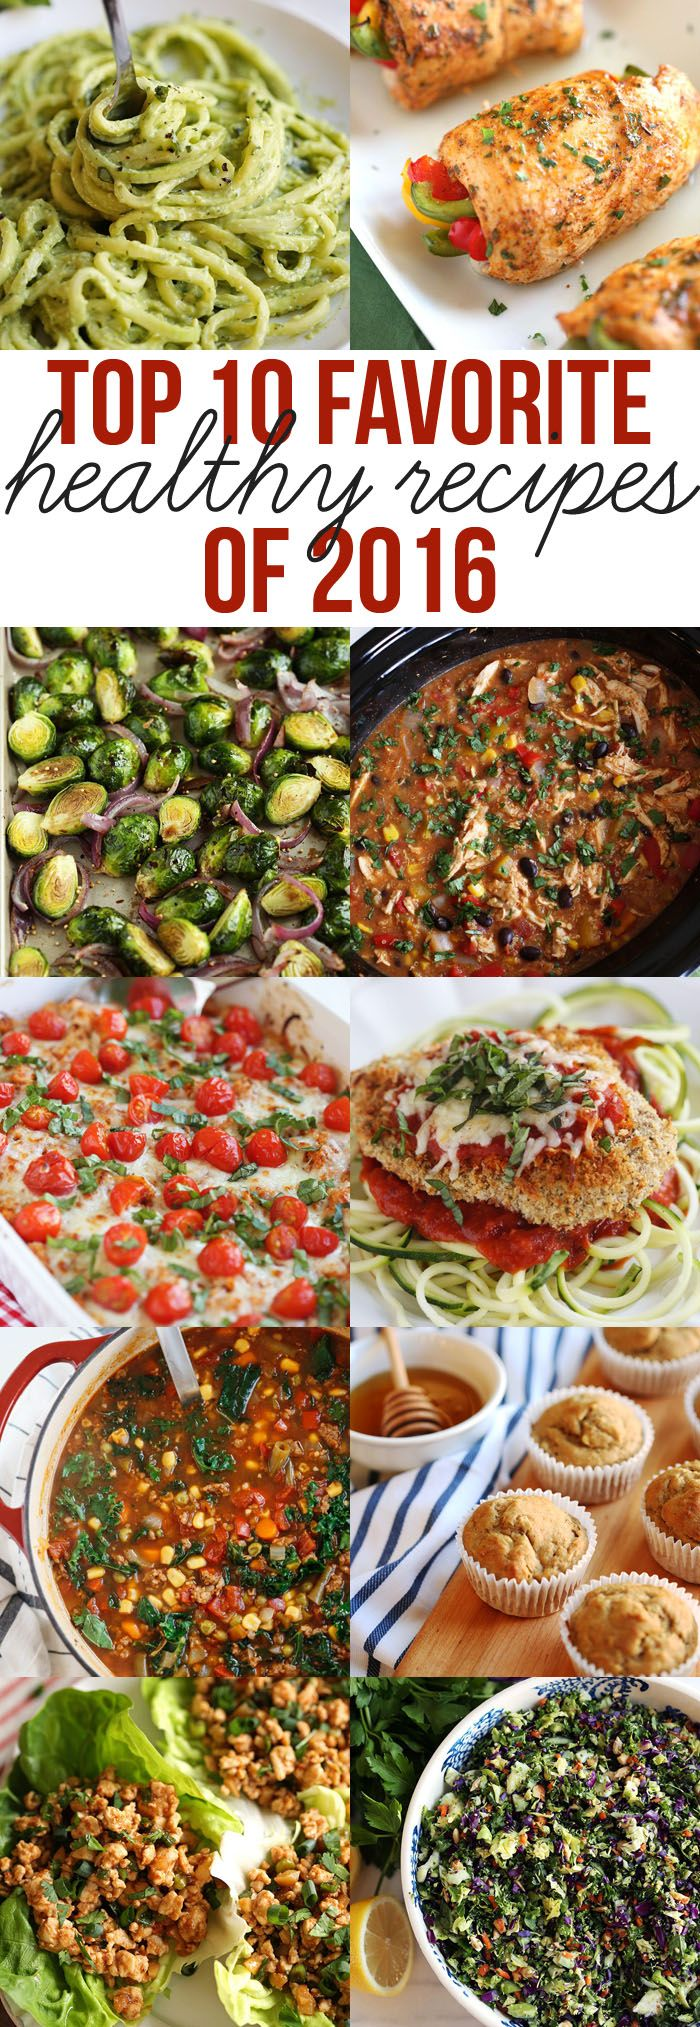 Check out the top 10 most popular healthy recipes featured on Eat Yourself Skinny in 2016 that are a MUST to try in the New Year!